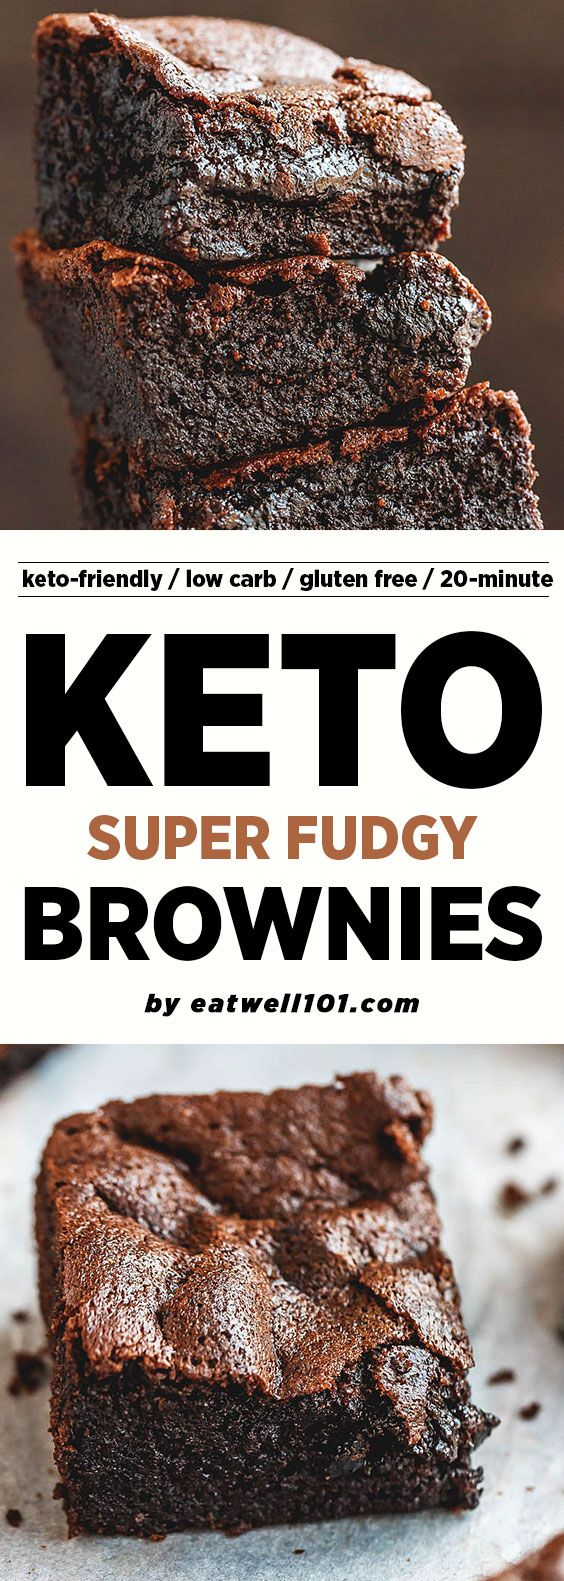 Super Fudgy Low-Carb Keto Brownies Recipe